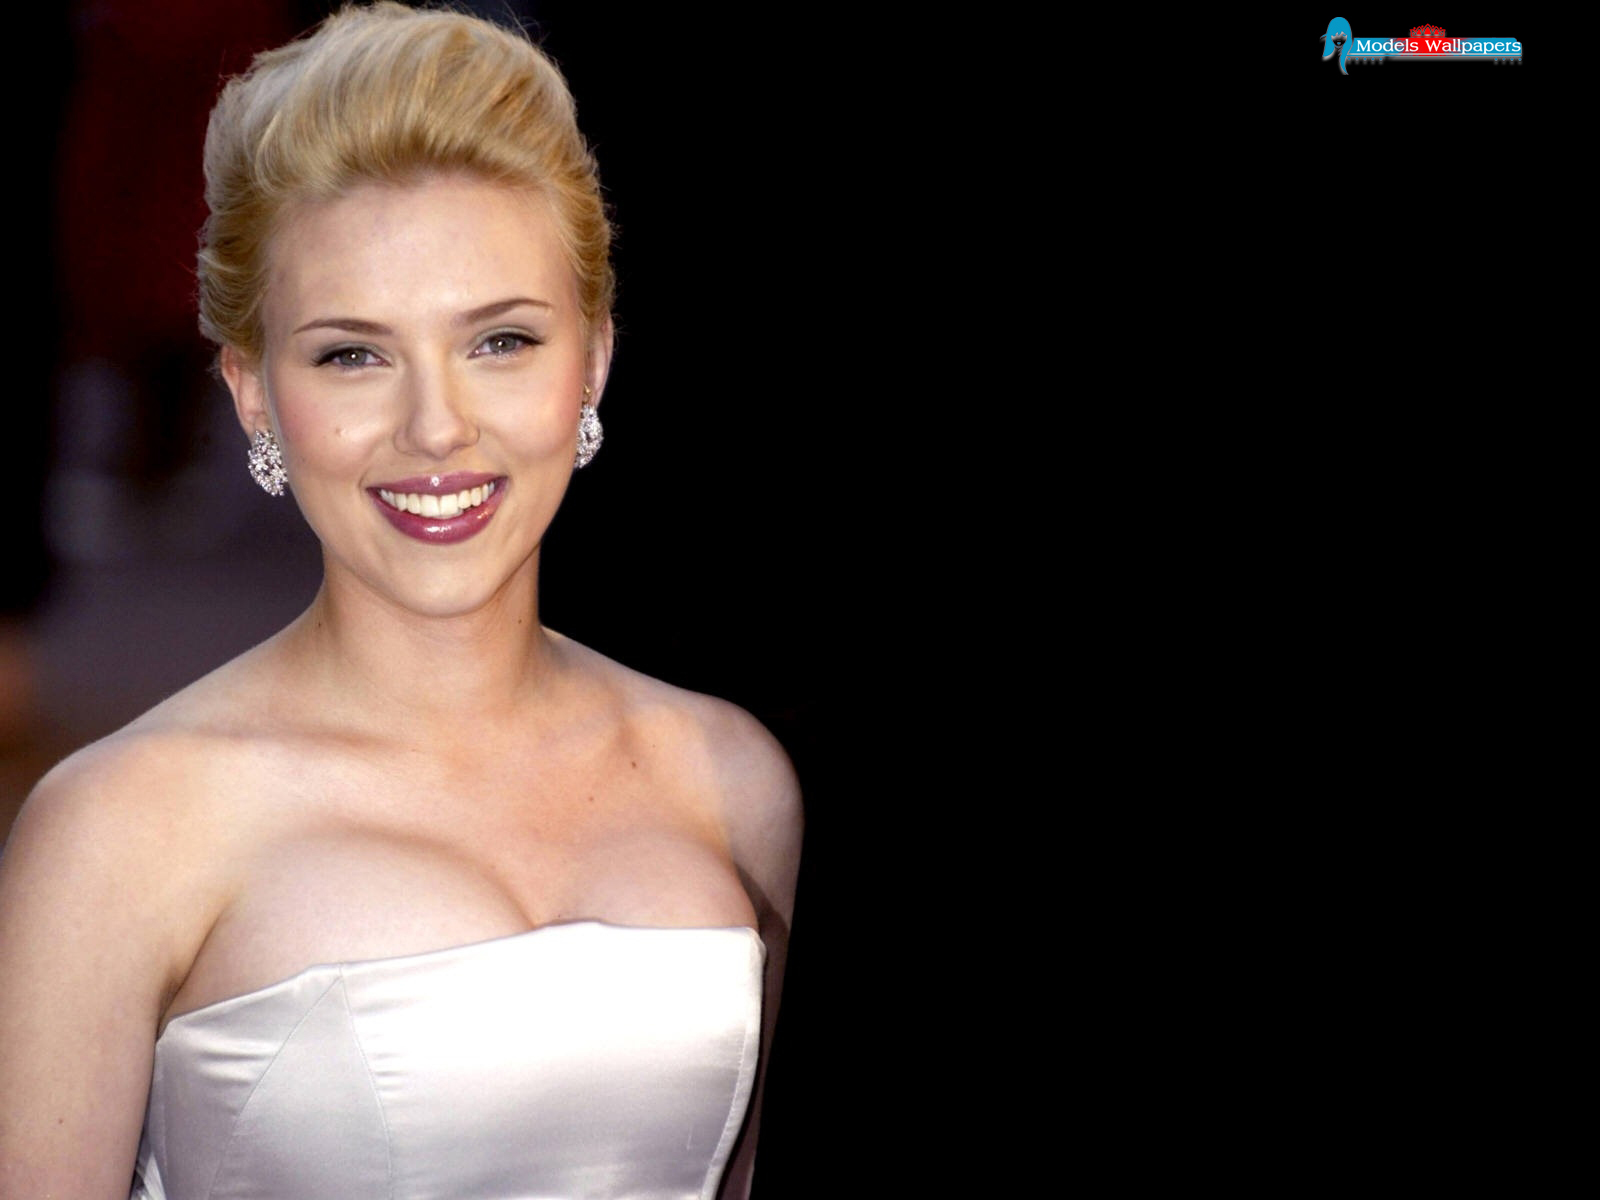 scarlett johansson model - photo #1